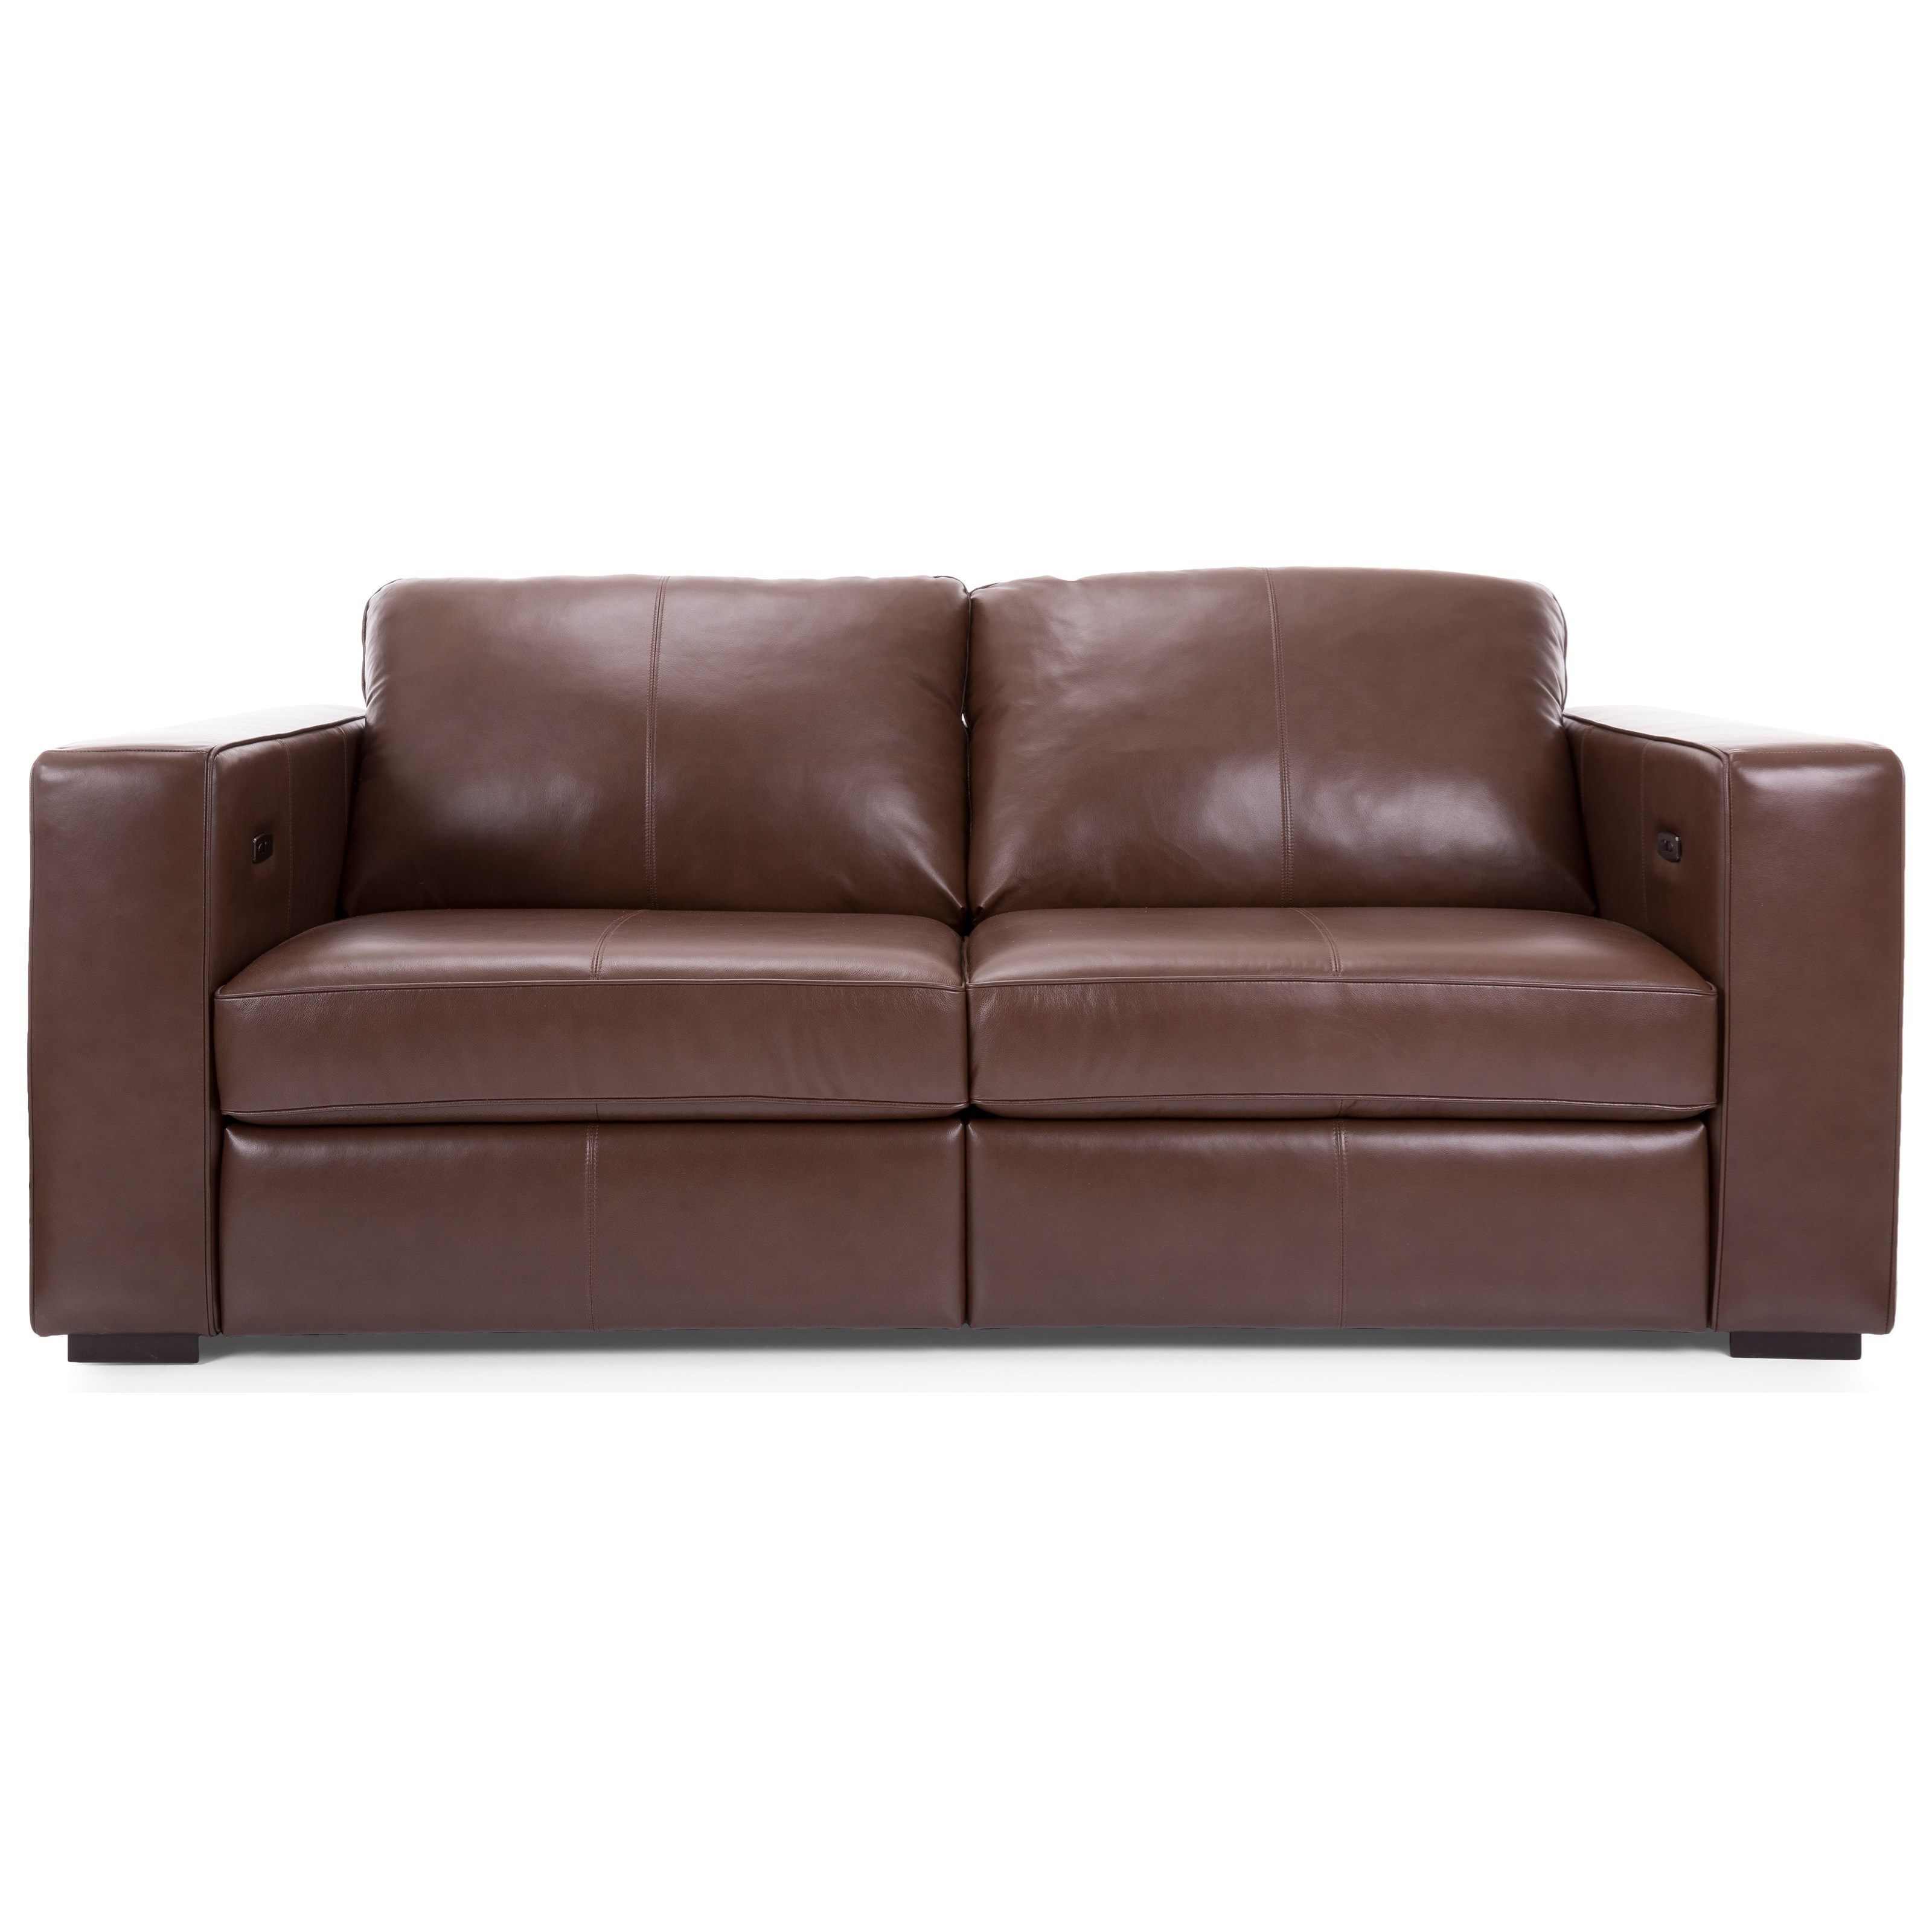 2900 Power Sofa by Decor-Rest at Reid's Furniture